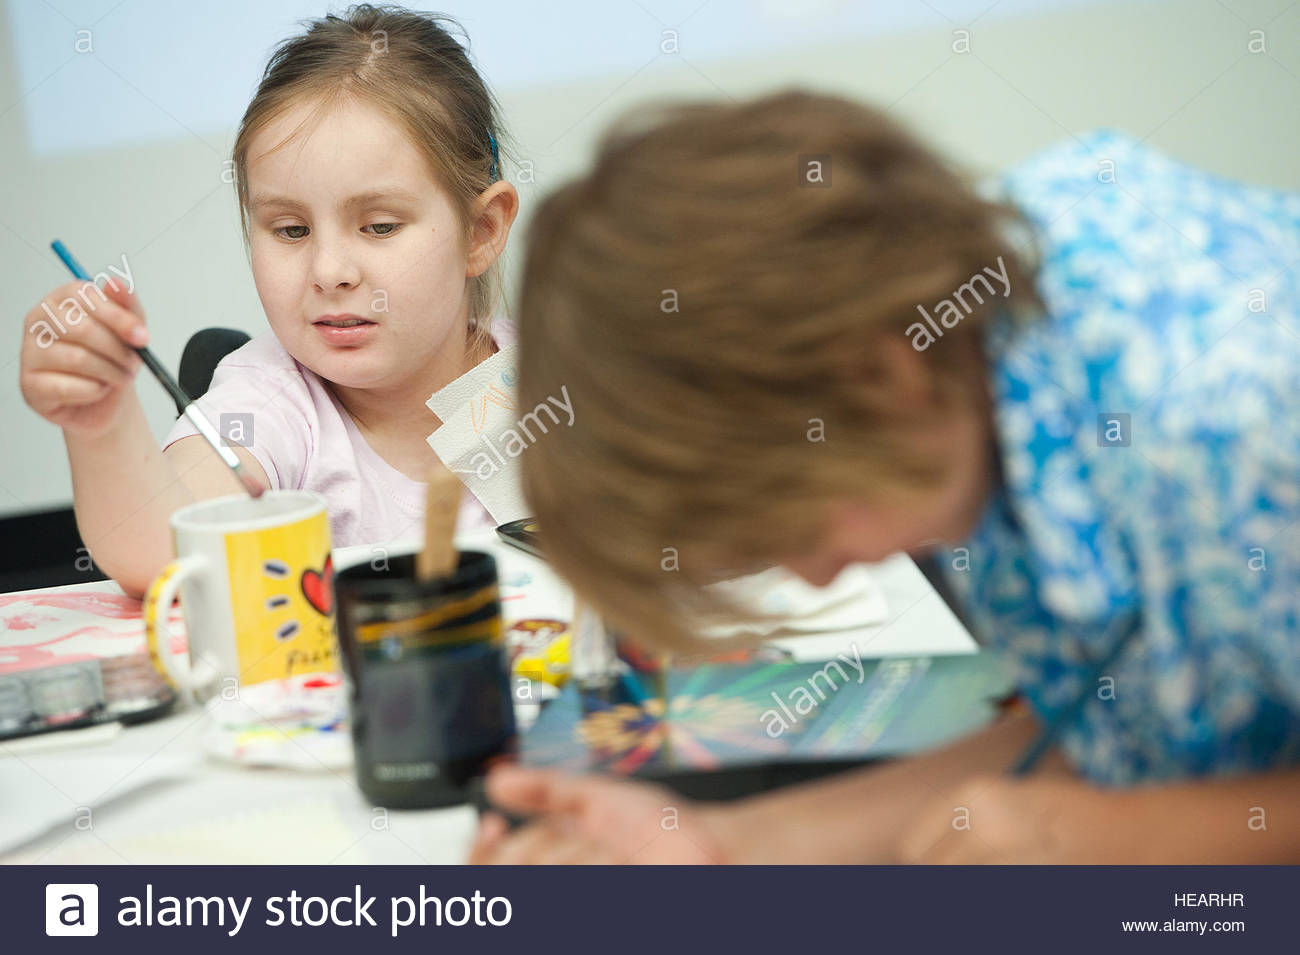 Haley Tyrrell, 10, paints with her brother, Zachary Tyrrell, 8, during the eighth annual Oncology on Canvas event - Stock Image